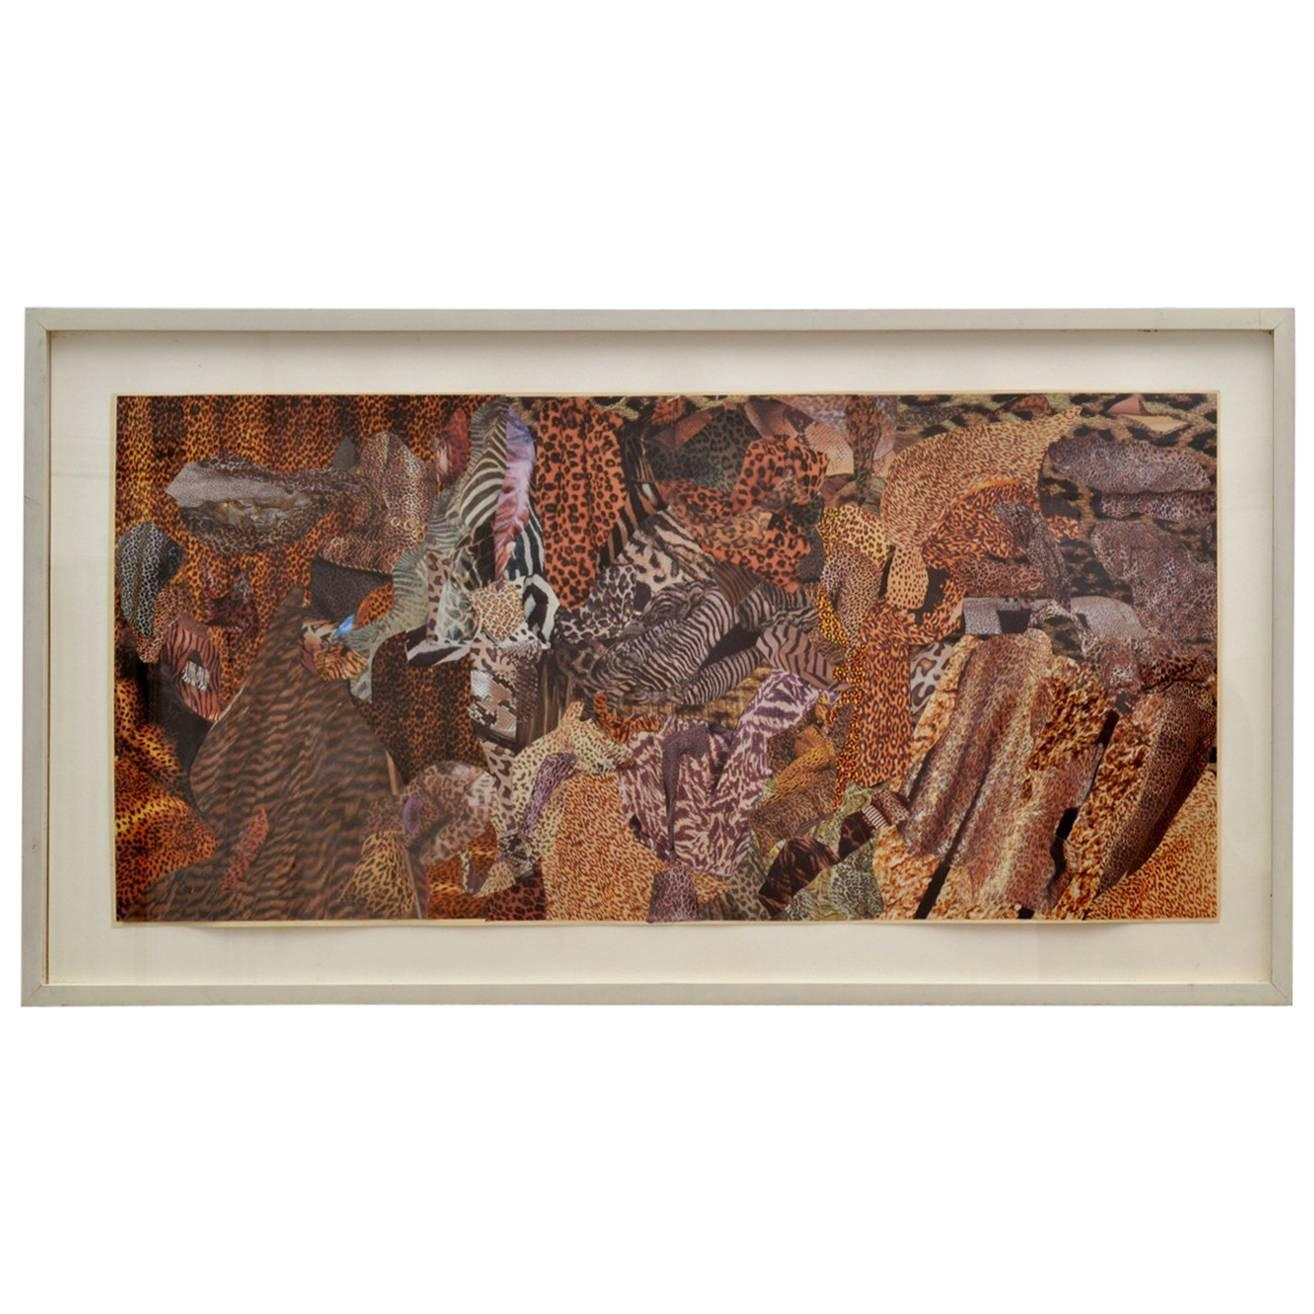 Abstract Collage Art in Brown by Bill Allan, UK, 1993